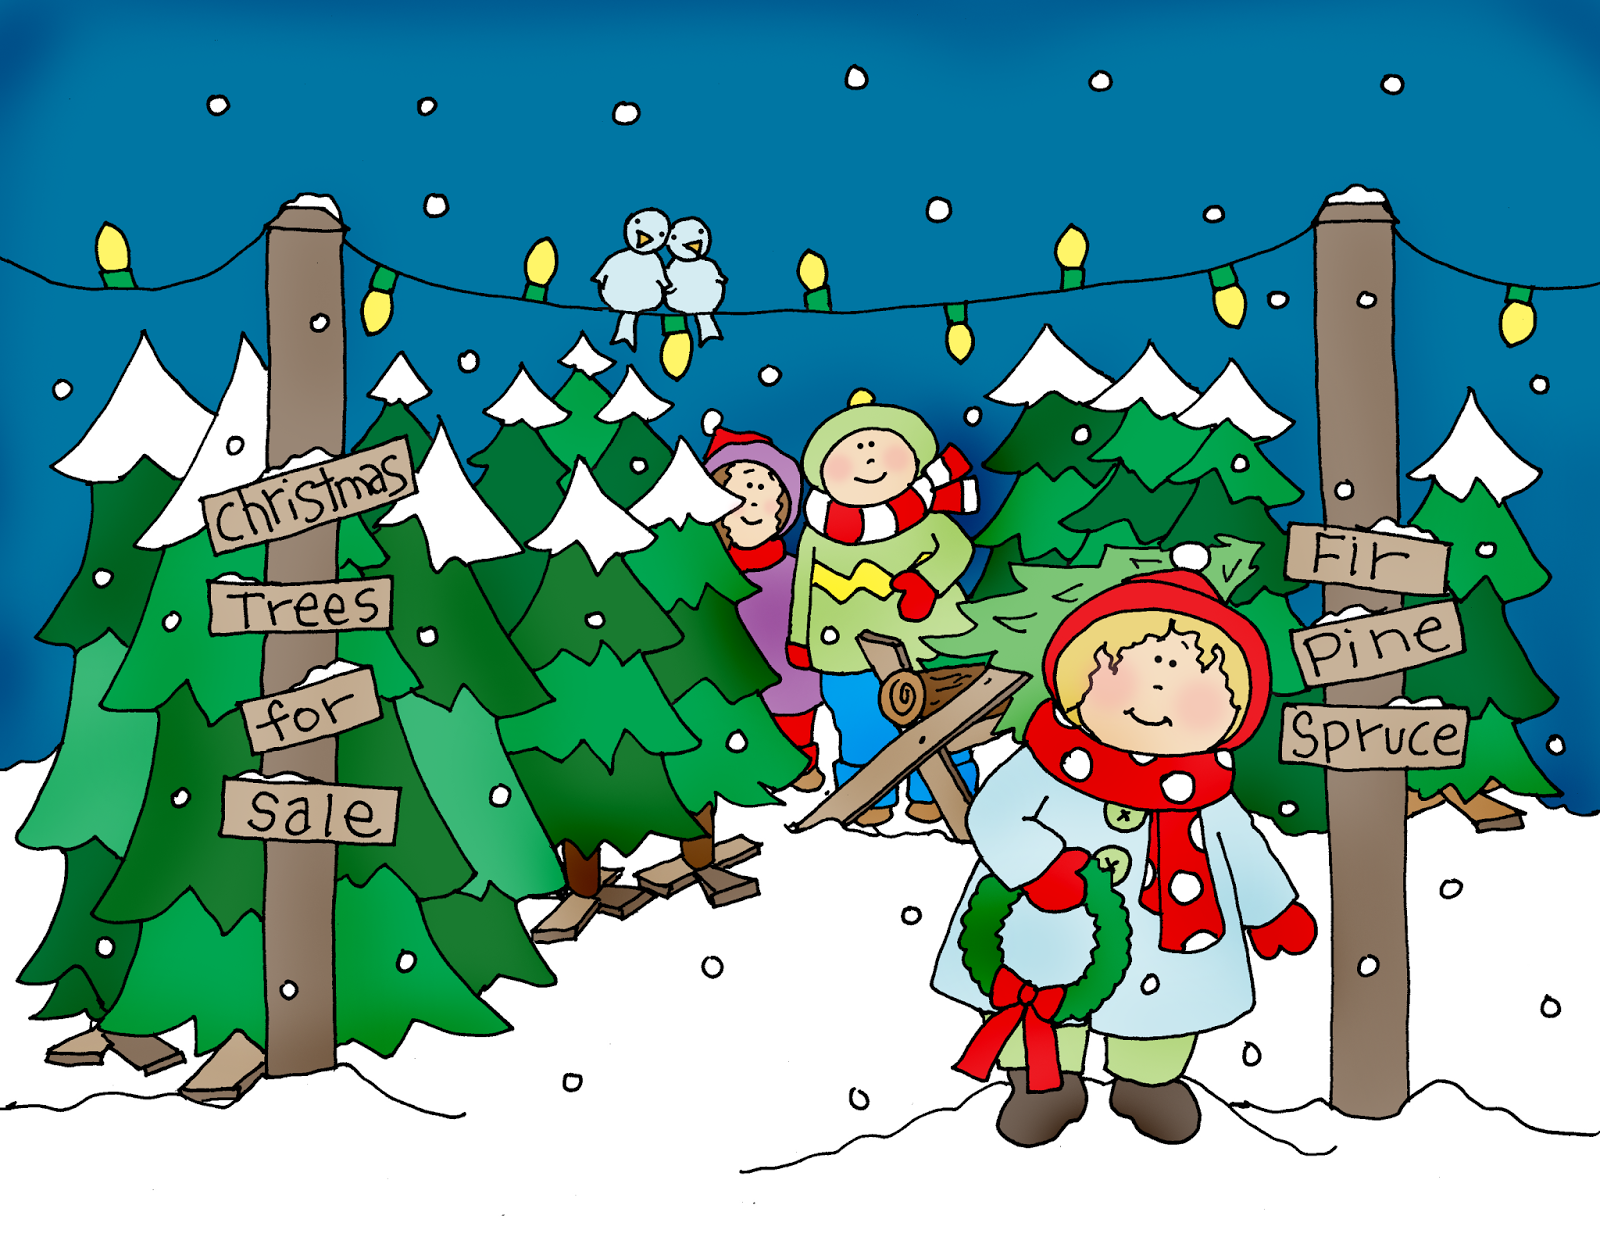 Free Dearie Dolls Digi Stamps Christmas Tree Lot Christmas Tree Lots Christmas Tree Digi Stamps